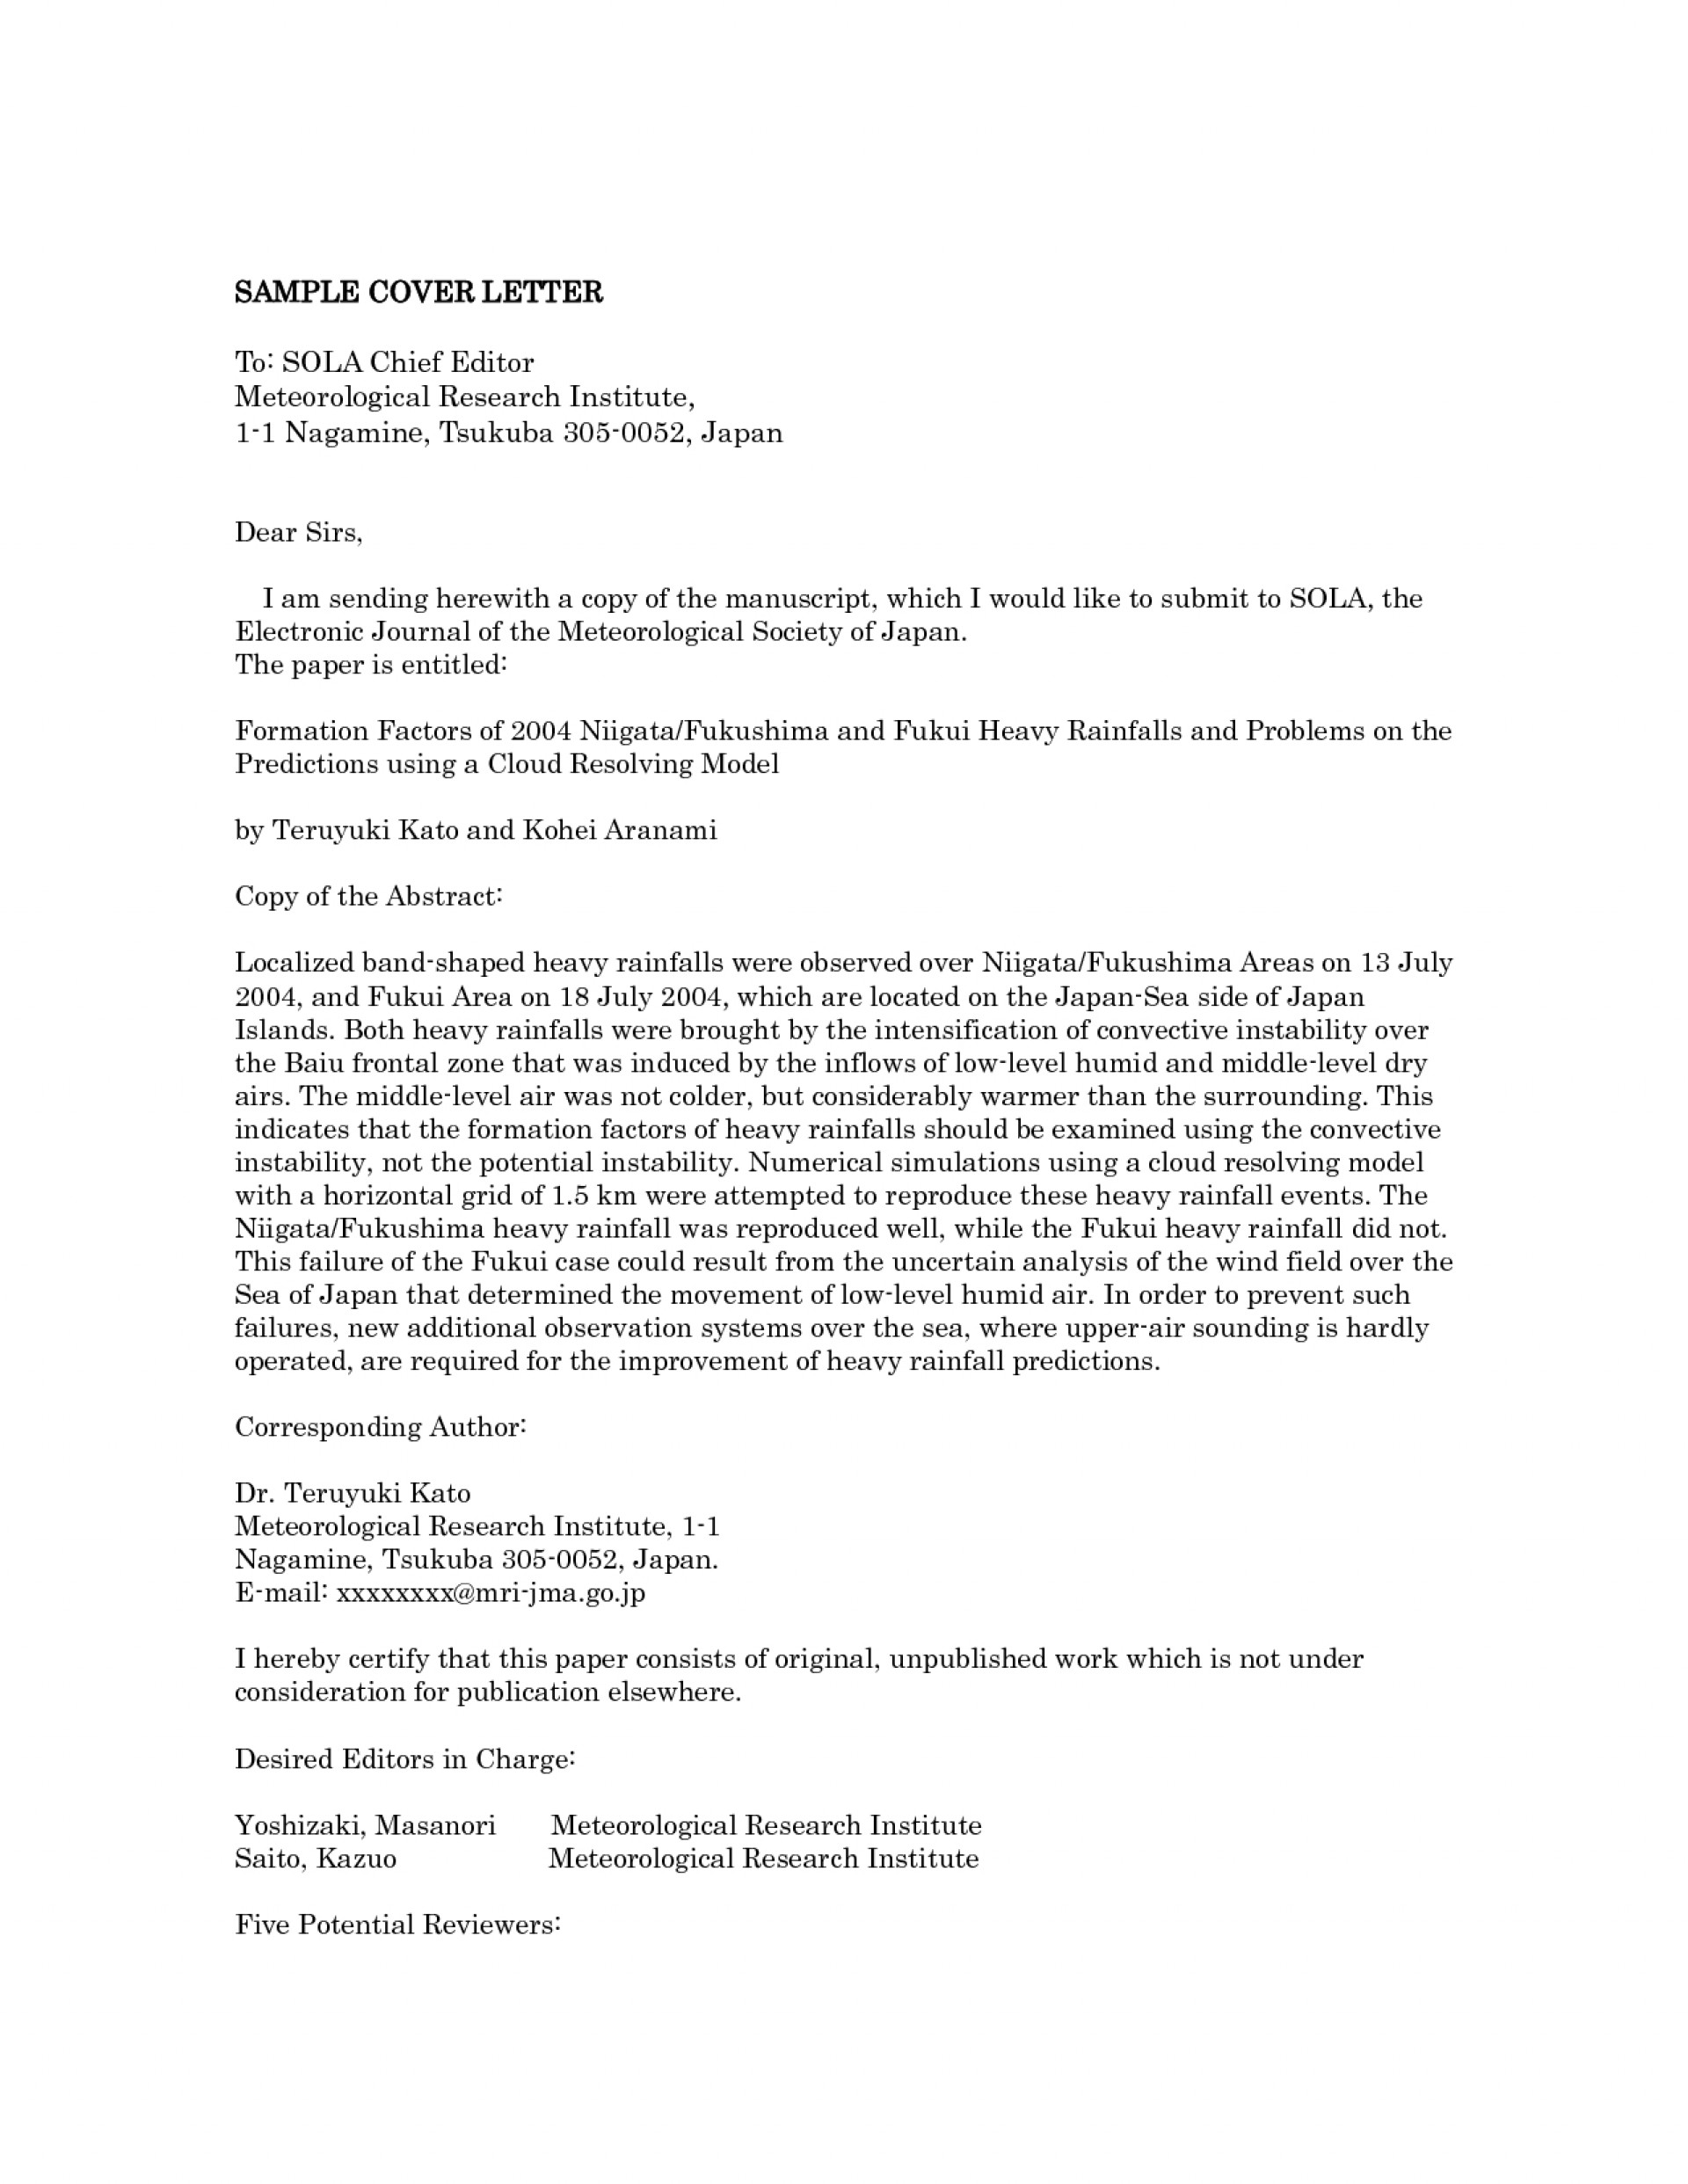 014 Research Paper Editor Cover Letter Breathtaking Free Professional Editors Software 1920